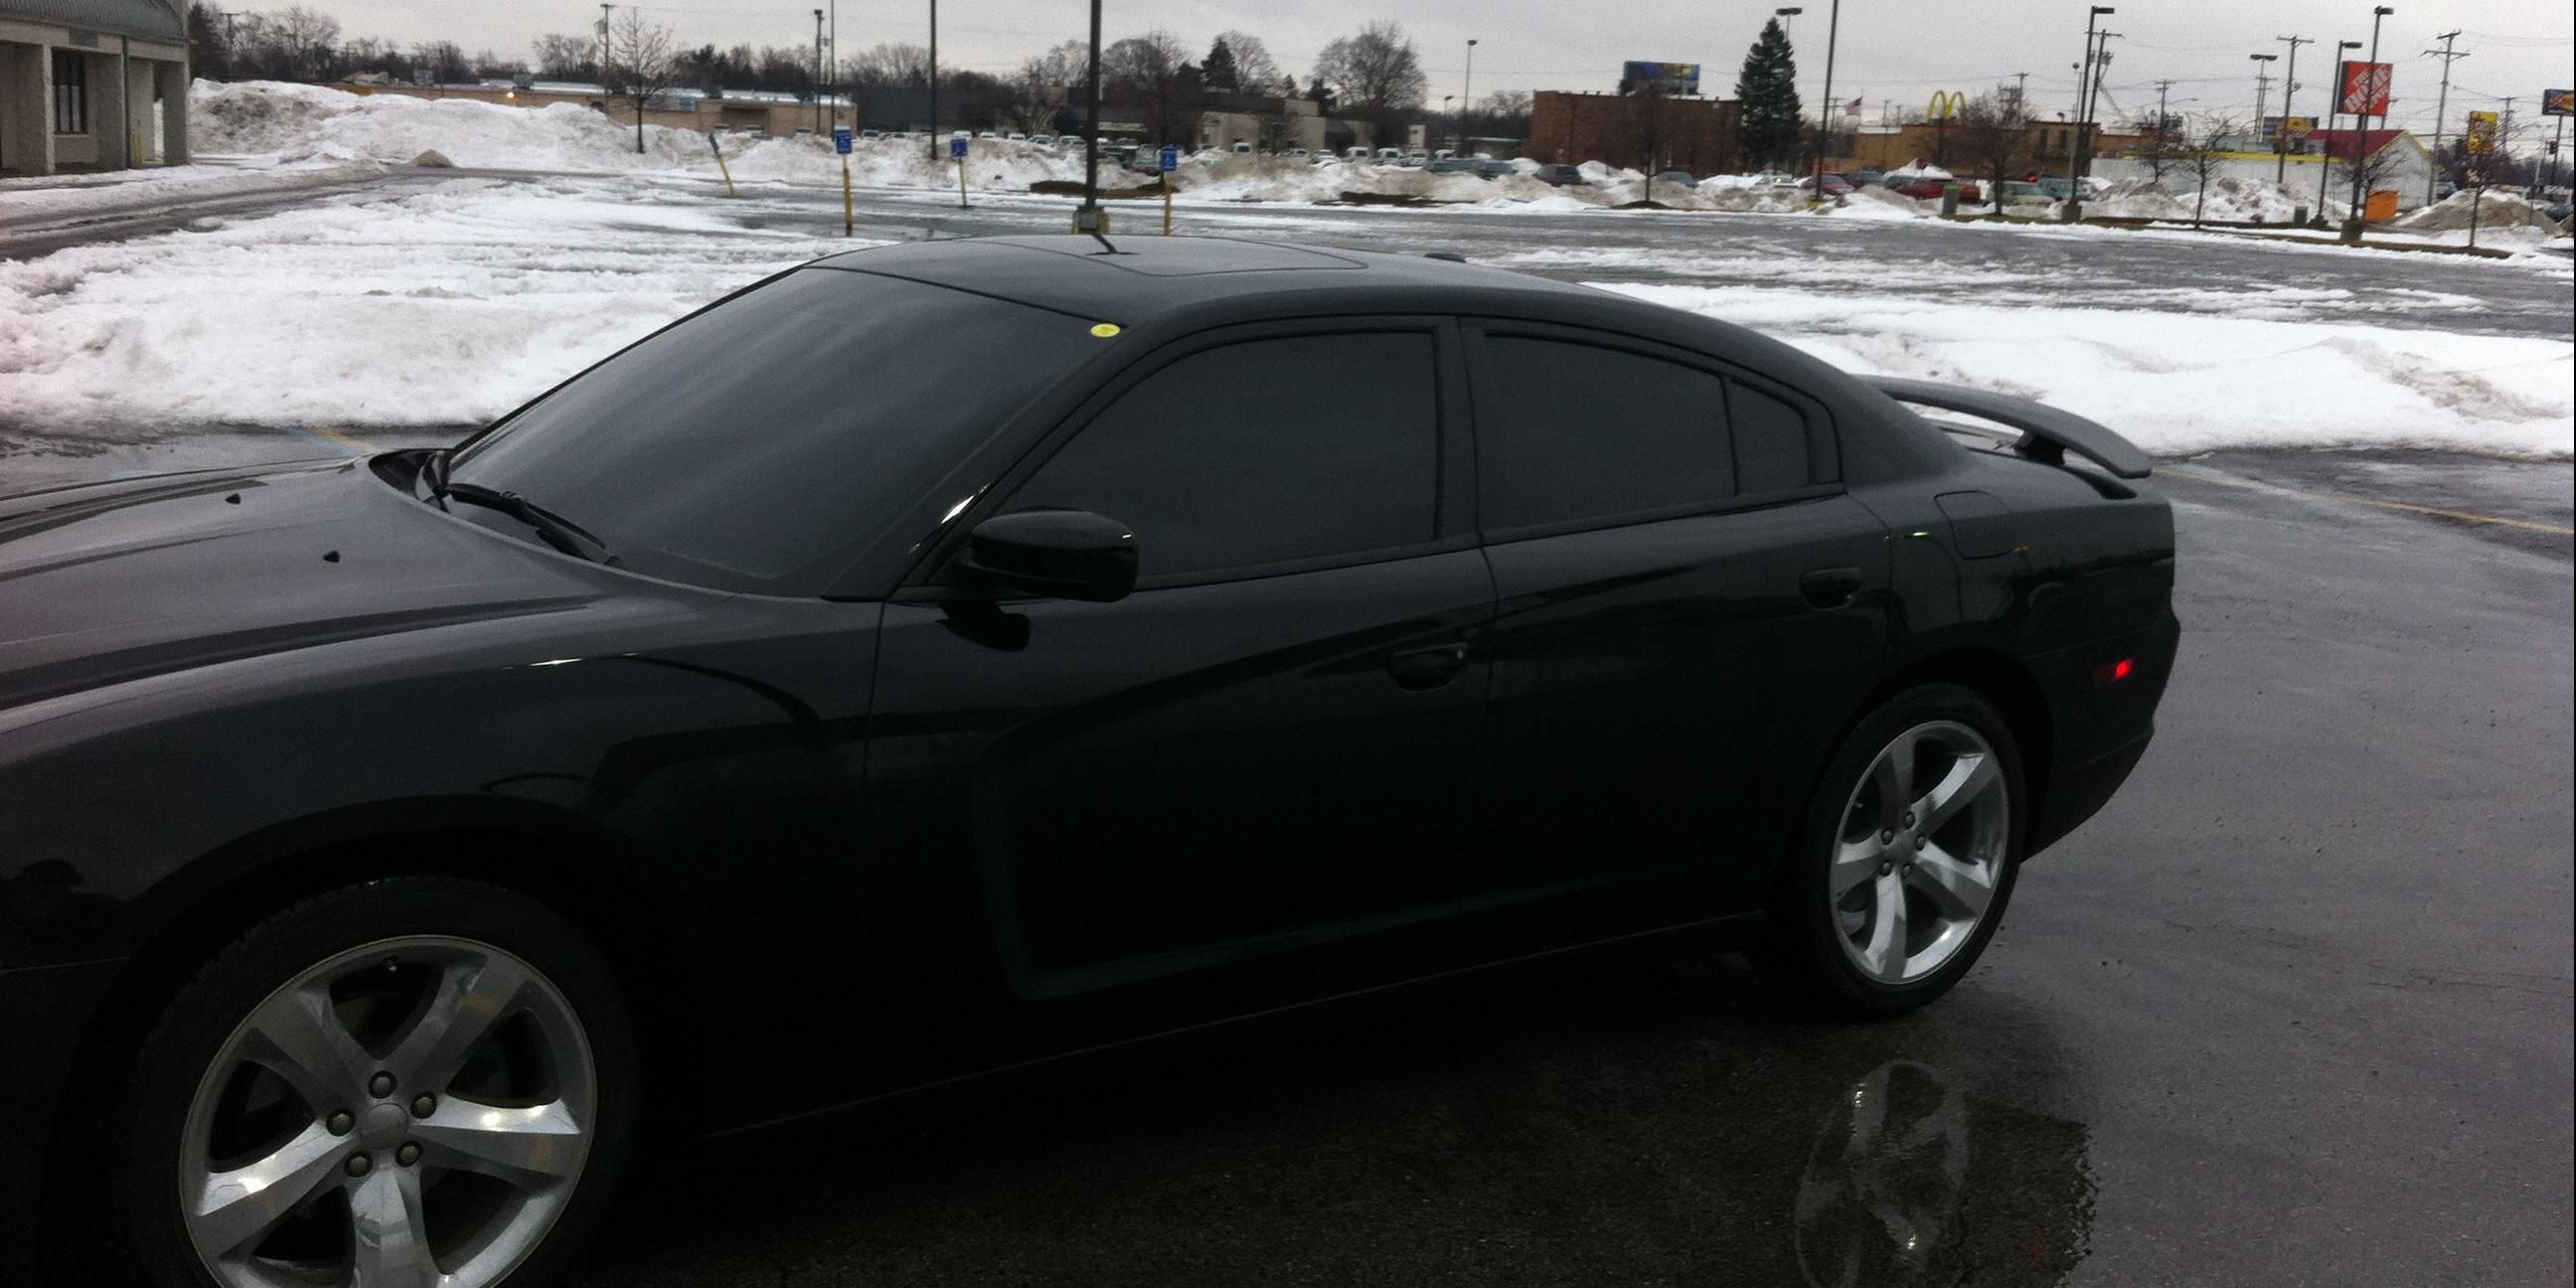 ddubb34's 2013 Dodge Charger